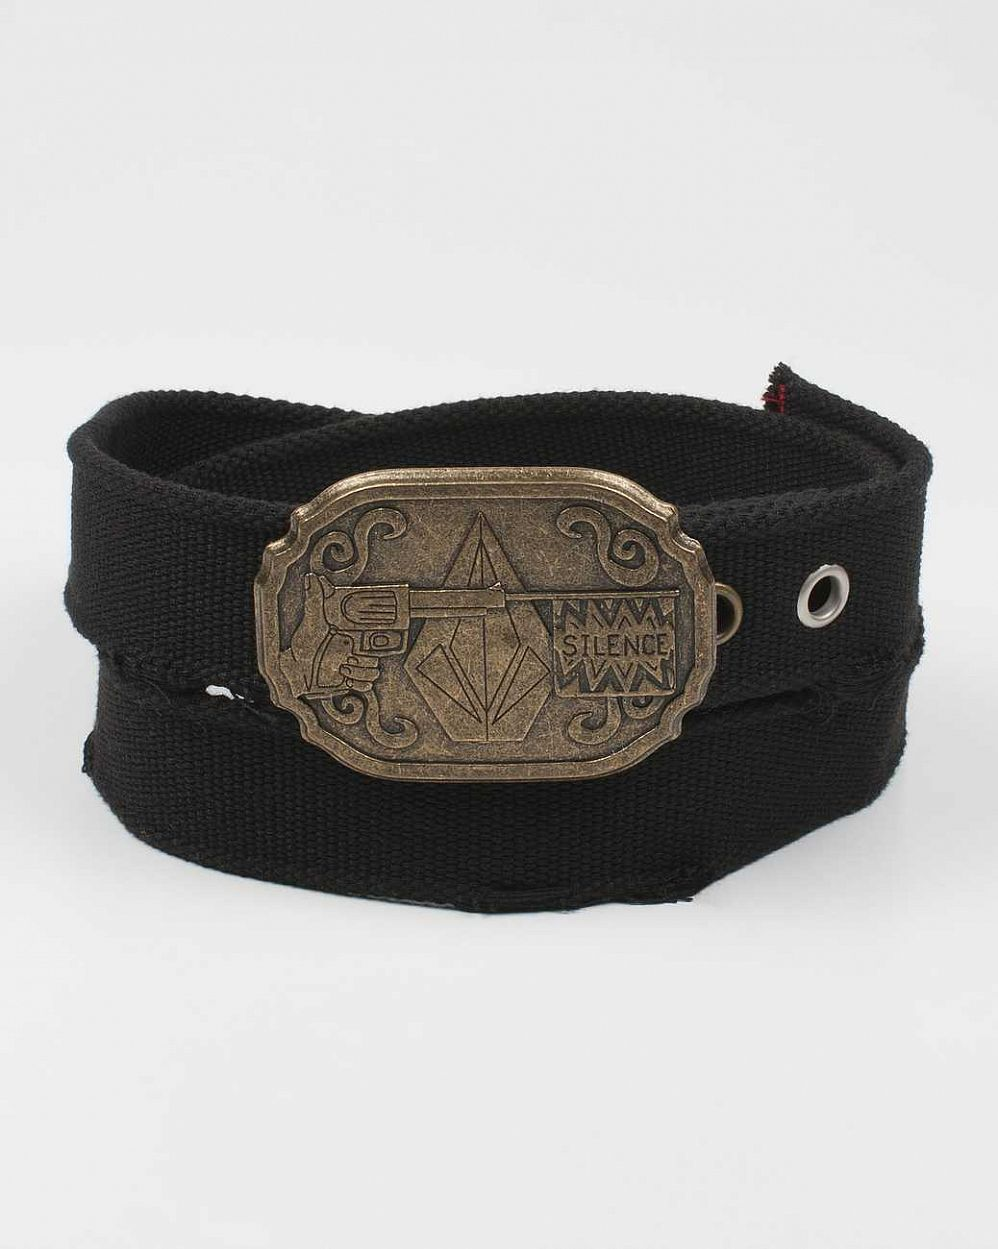 купить Ремень Volcom Fa Mike Aho Vegetarian Cowboy Belt Black в Москве